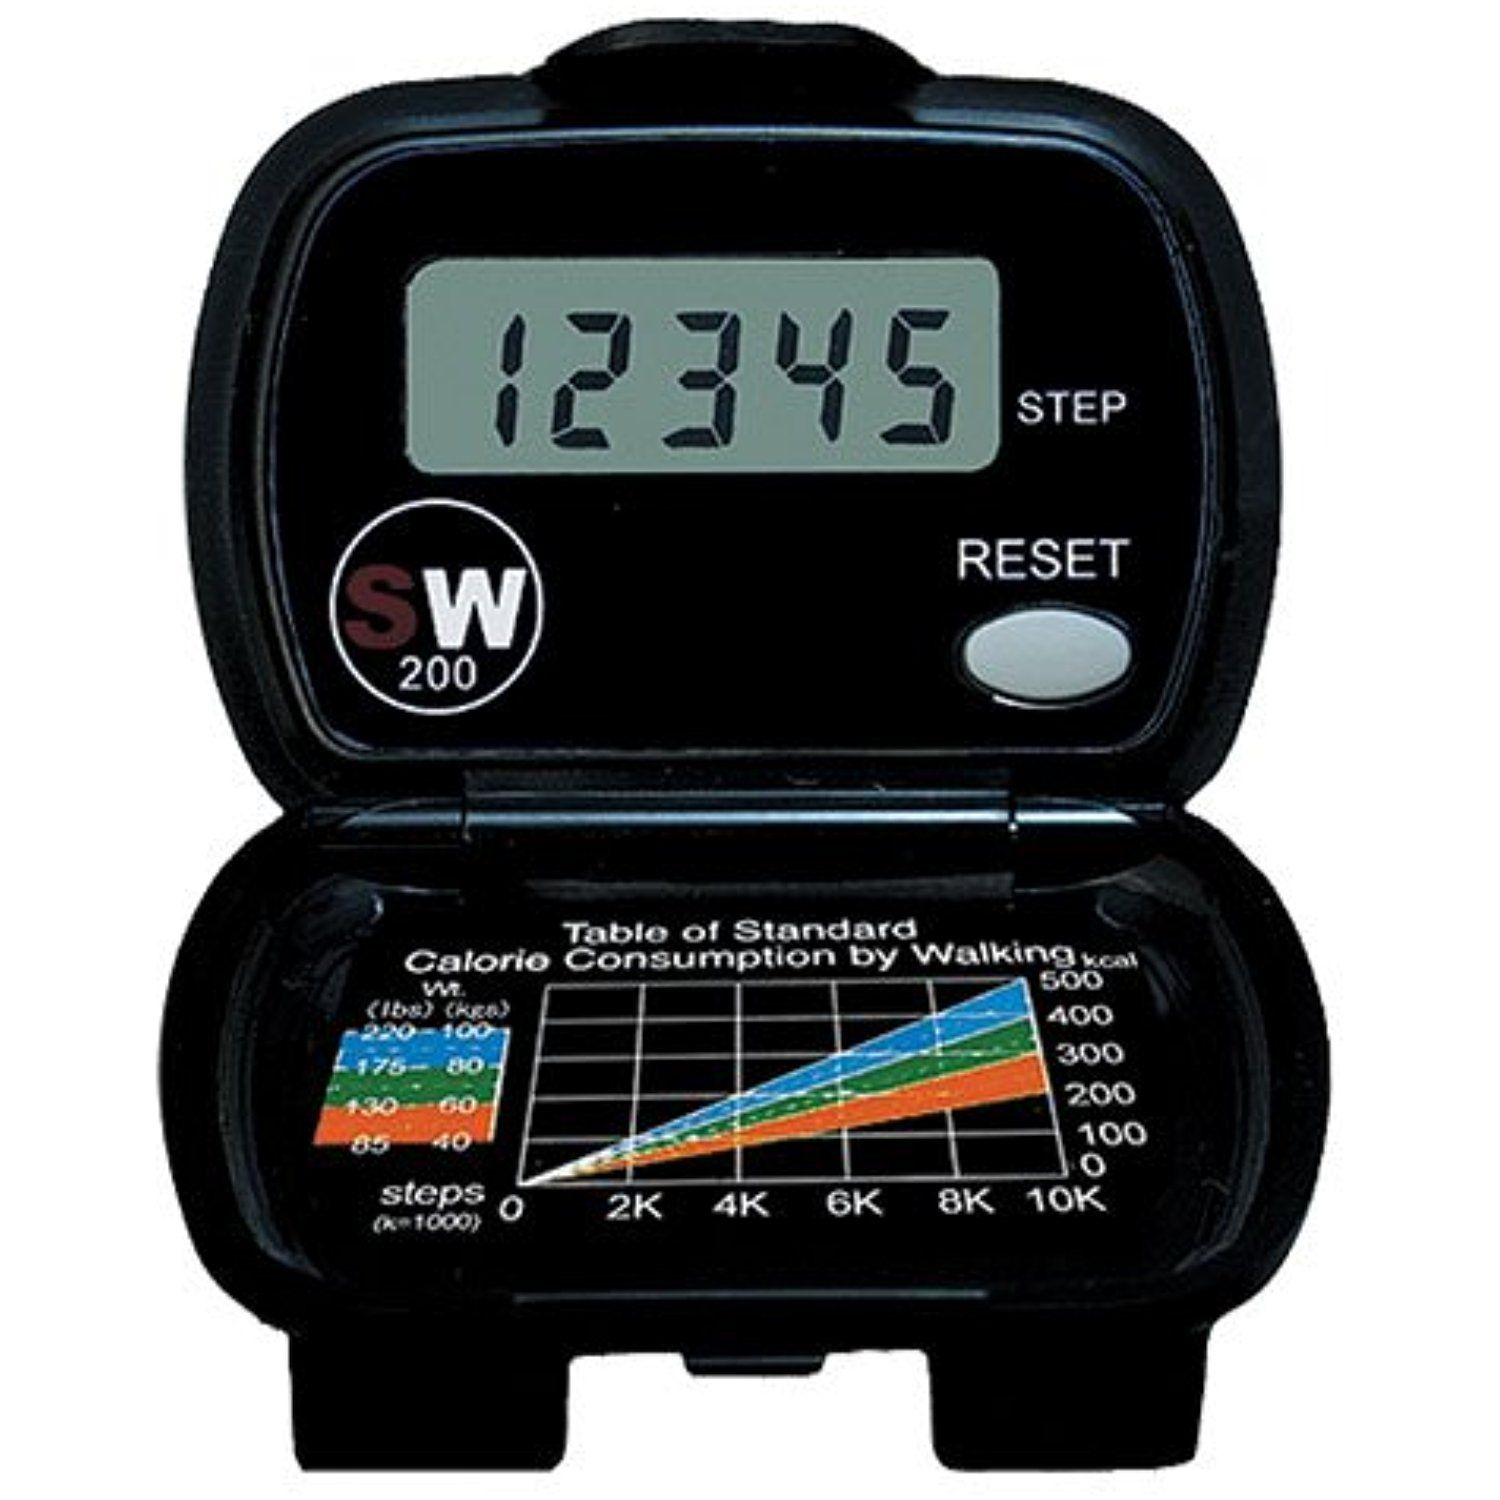 Fit Solutions SW200 Yamax Digiwalker Pedometer * To view